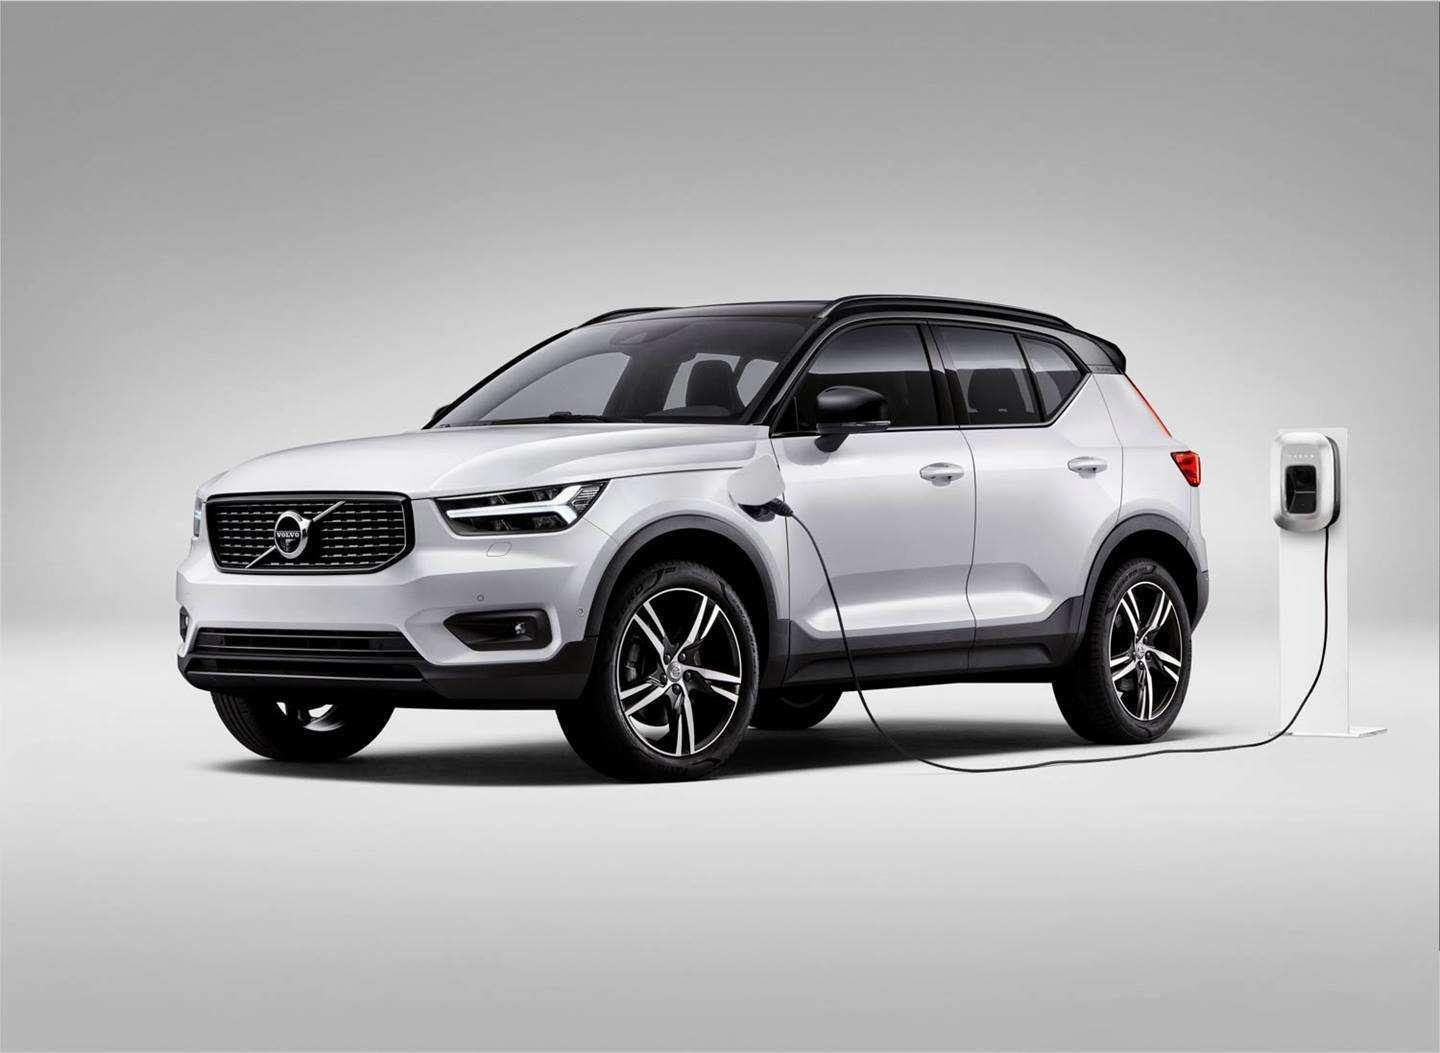 98 The Best Volvo Electric Vehicles 2019 Speed Test